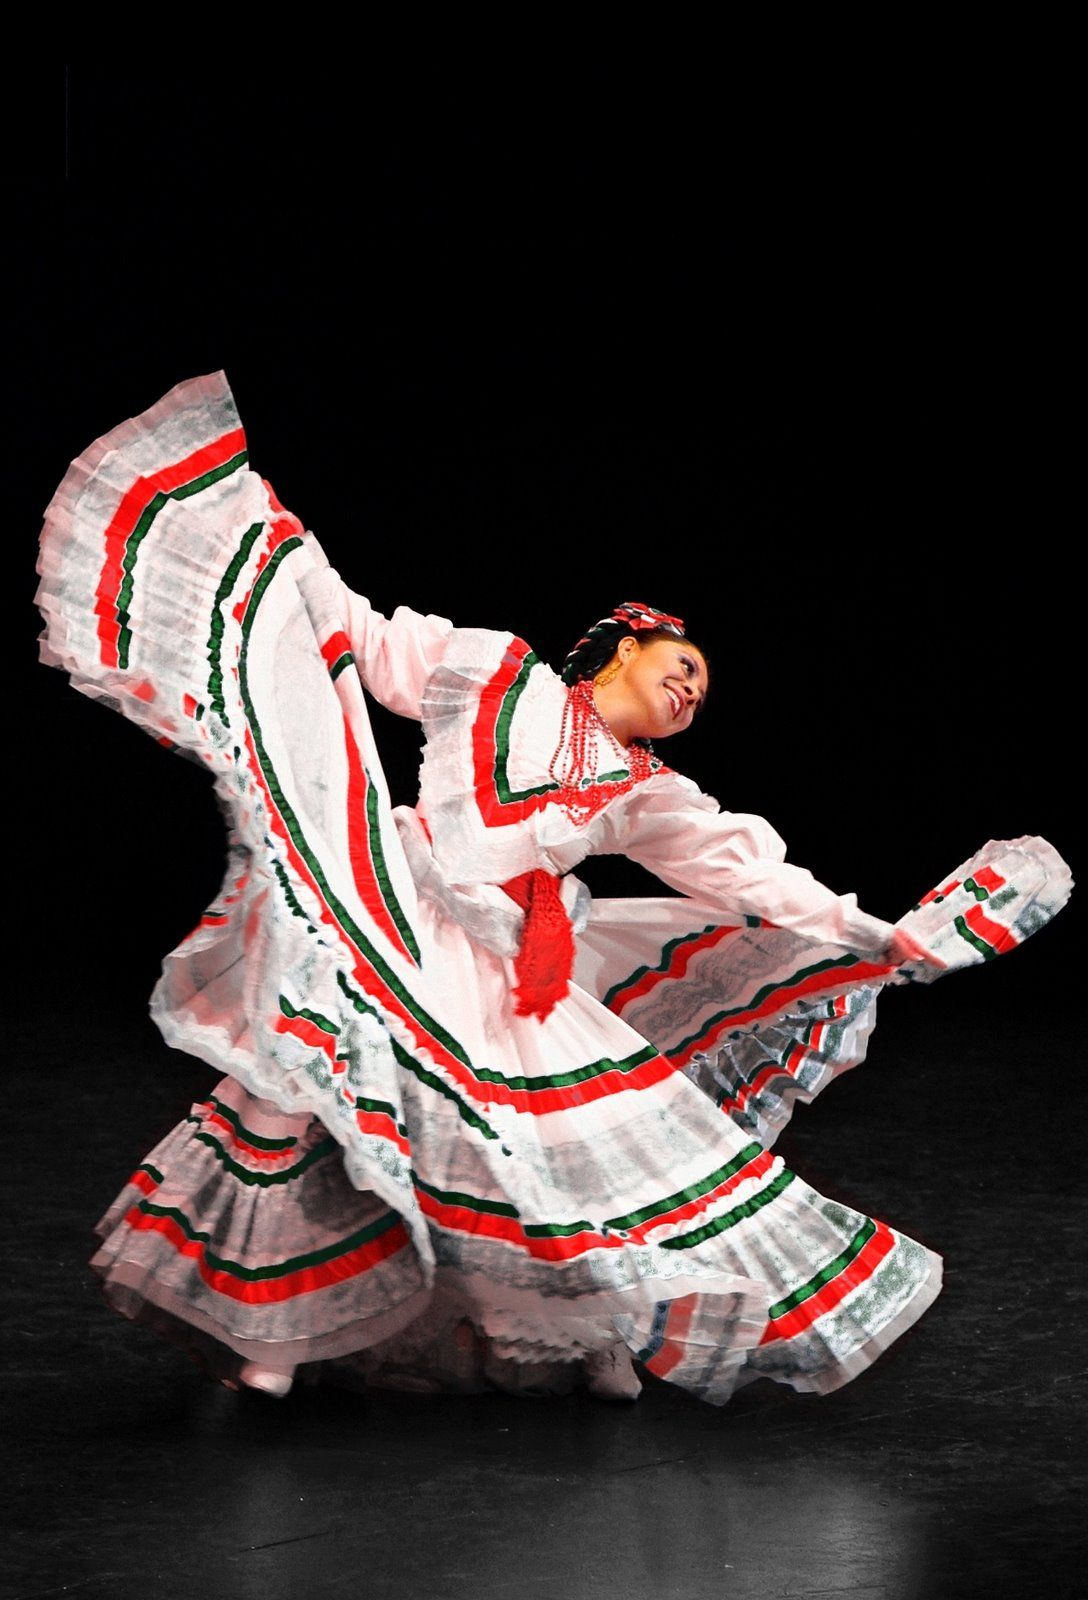 Www Bing Com1 Microsoft Way Redmond: Dance, Mexican Art